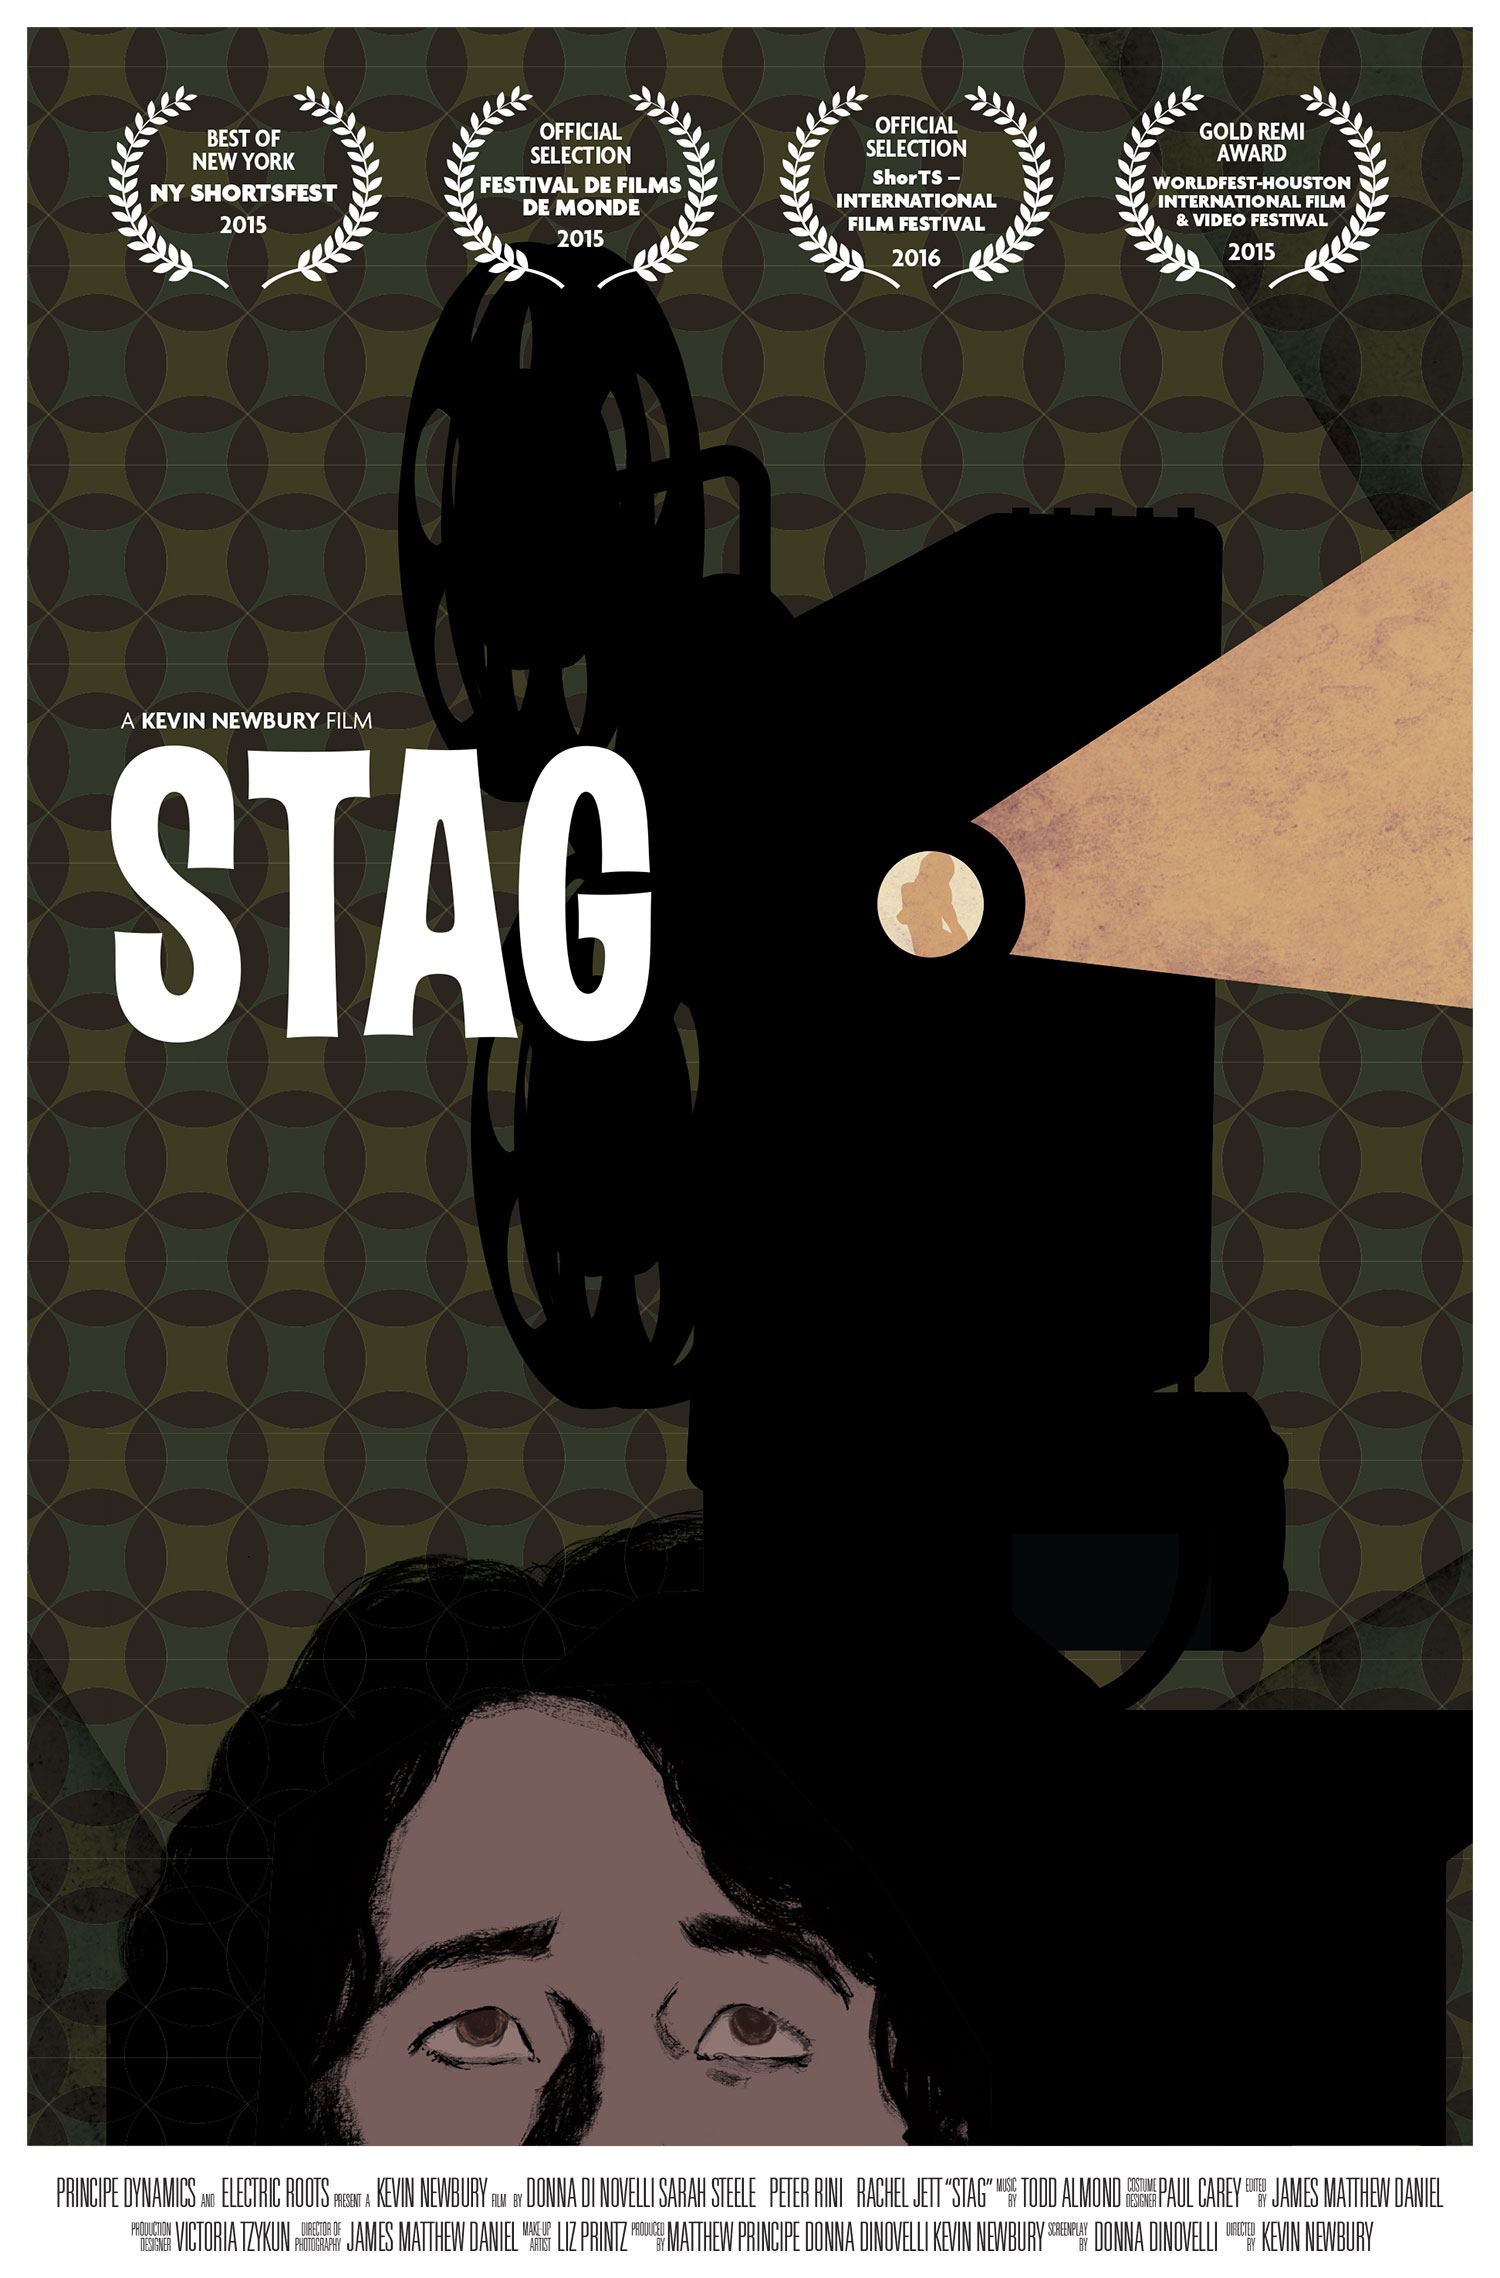 Stag, the Award-Winning Short Film